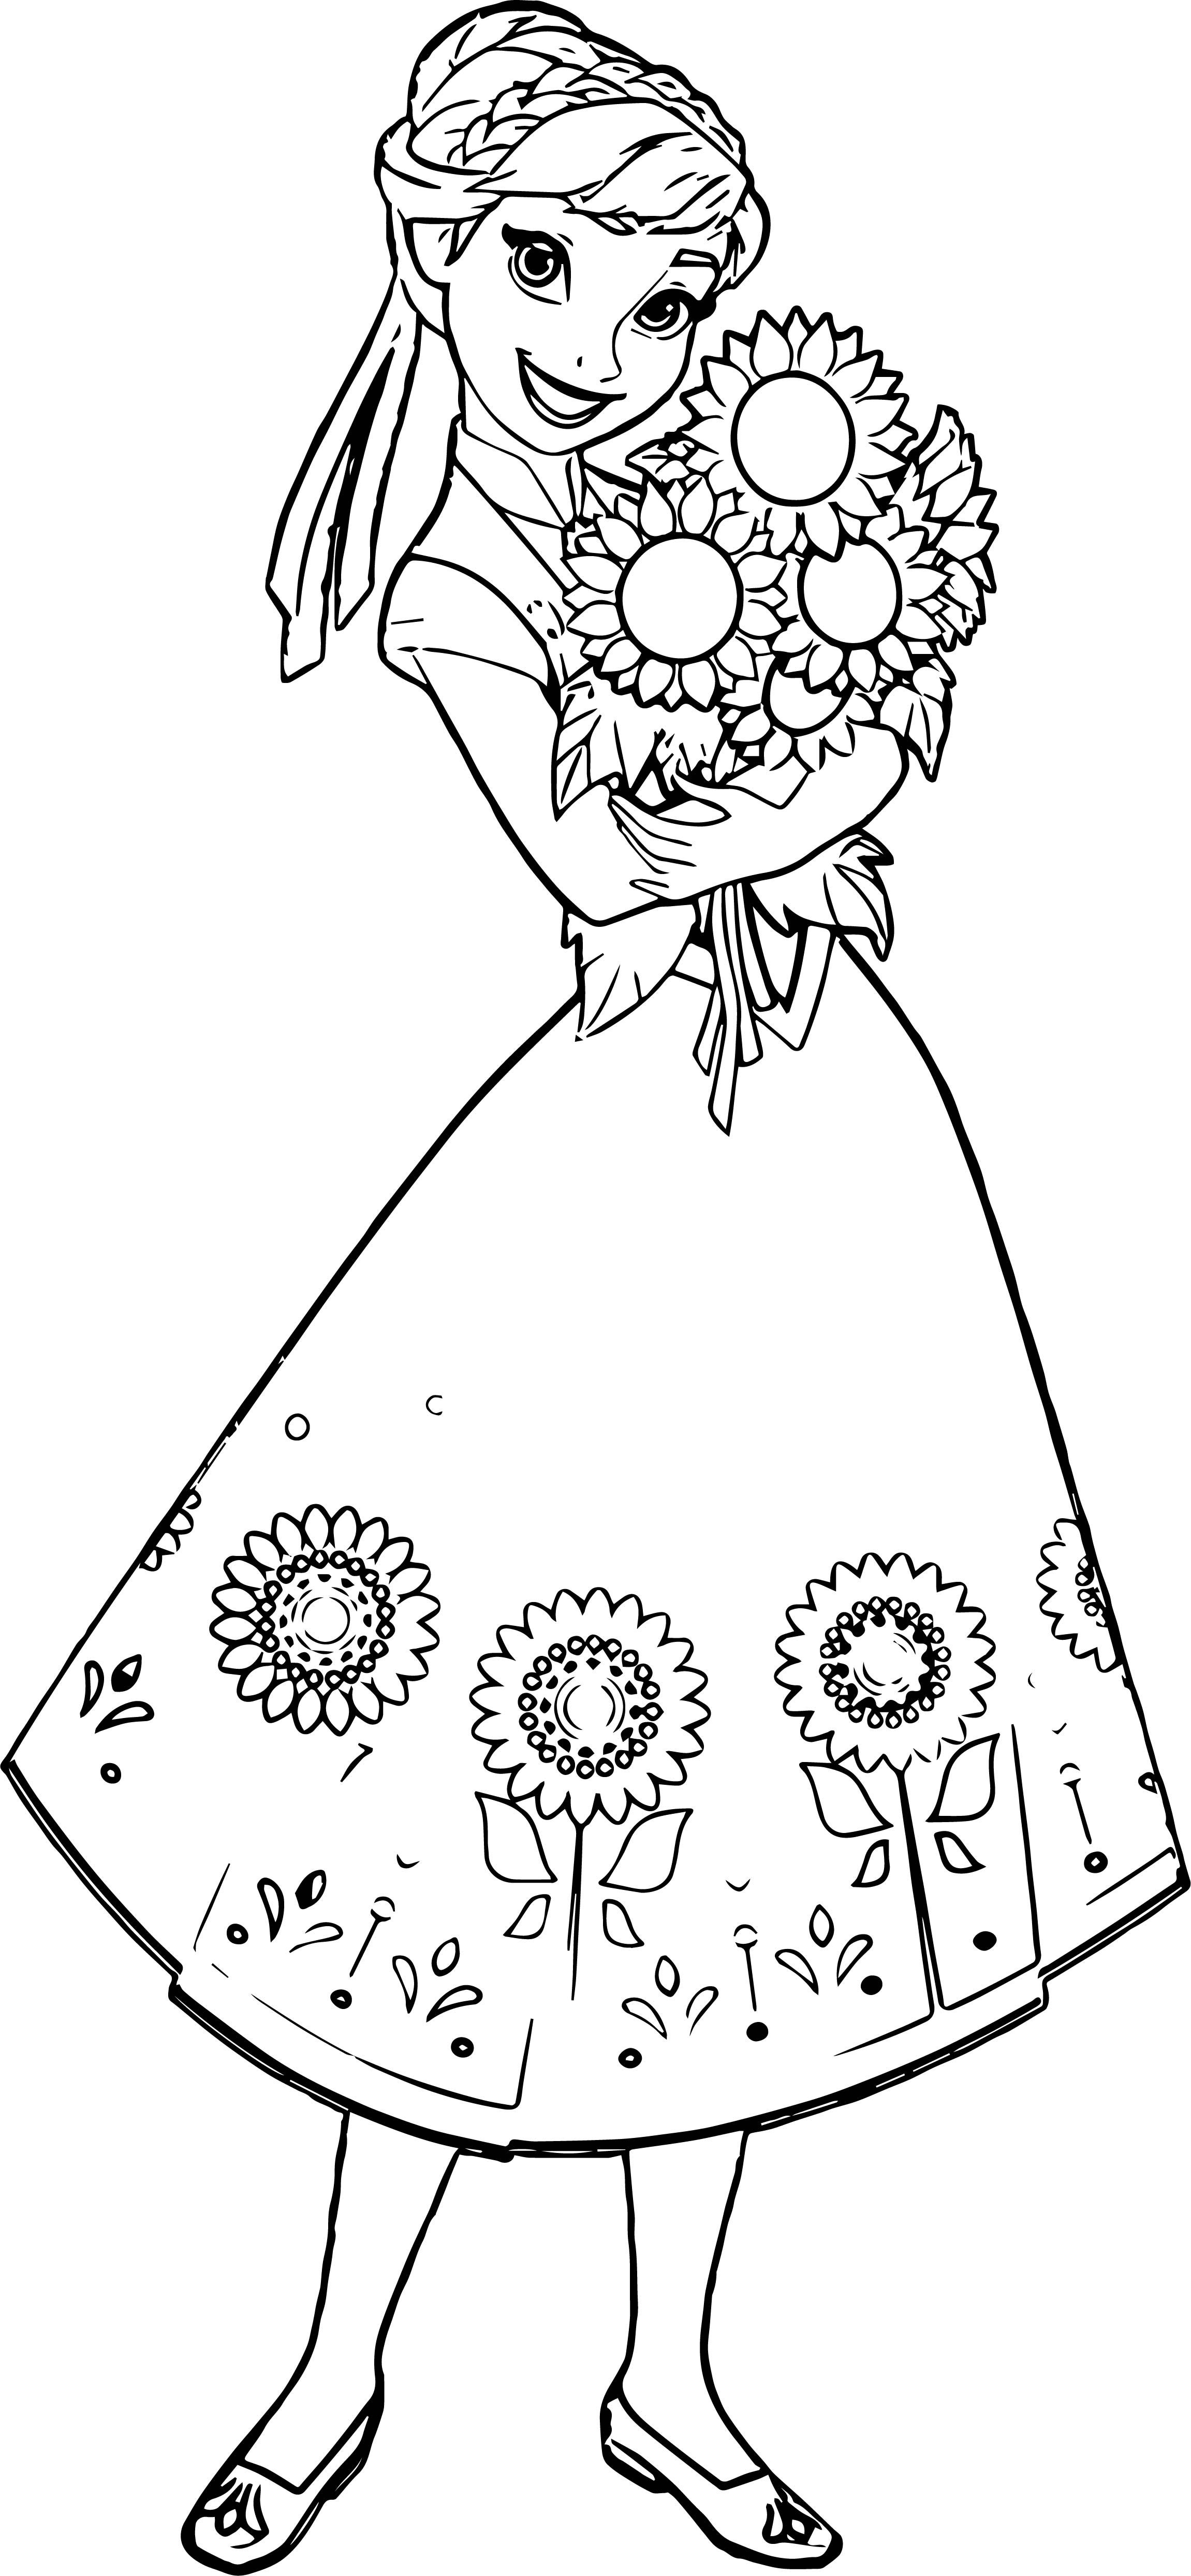 Fever Anna Sunflowers Coloring Page Elsa Coloring Pages Disney Princess Coloring Pages Sunflower Coloring Pages